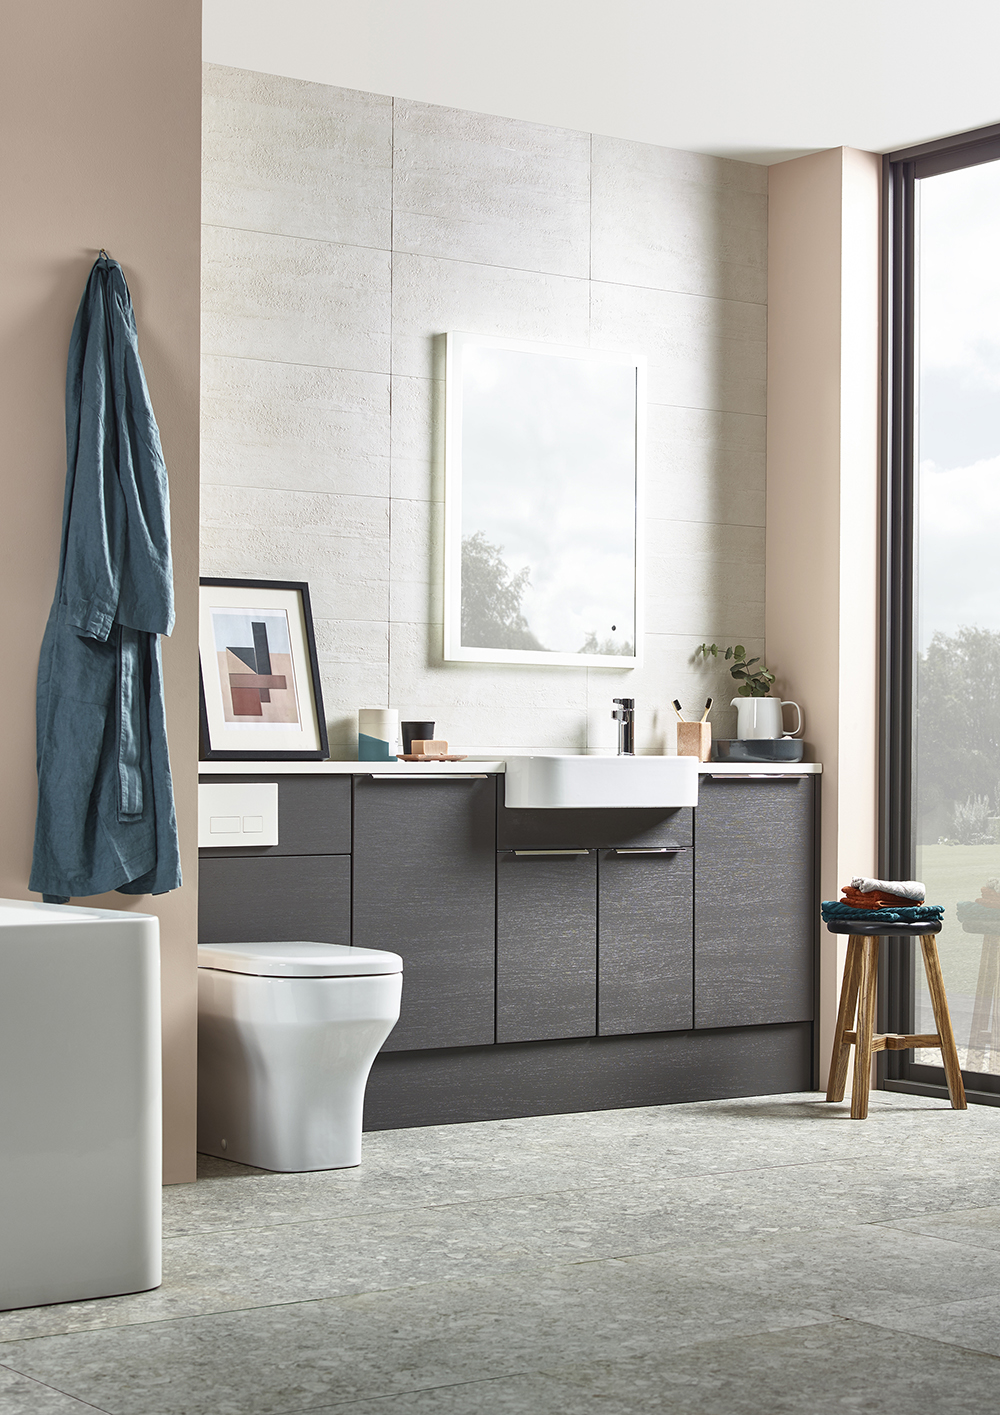 a fine art - The addition of a simple print can add character to your bathroom. Choose a design that suits your colour scheme and the overall style of your washroom.